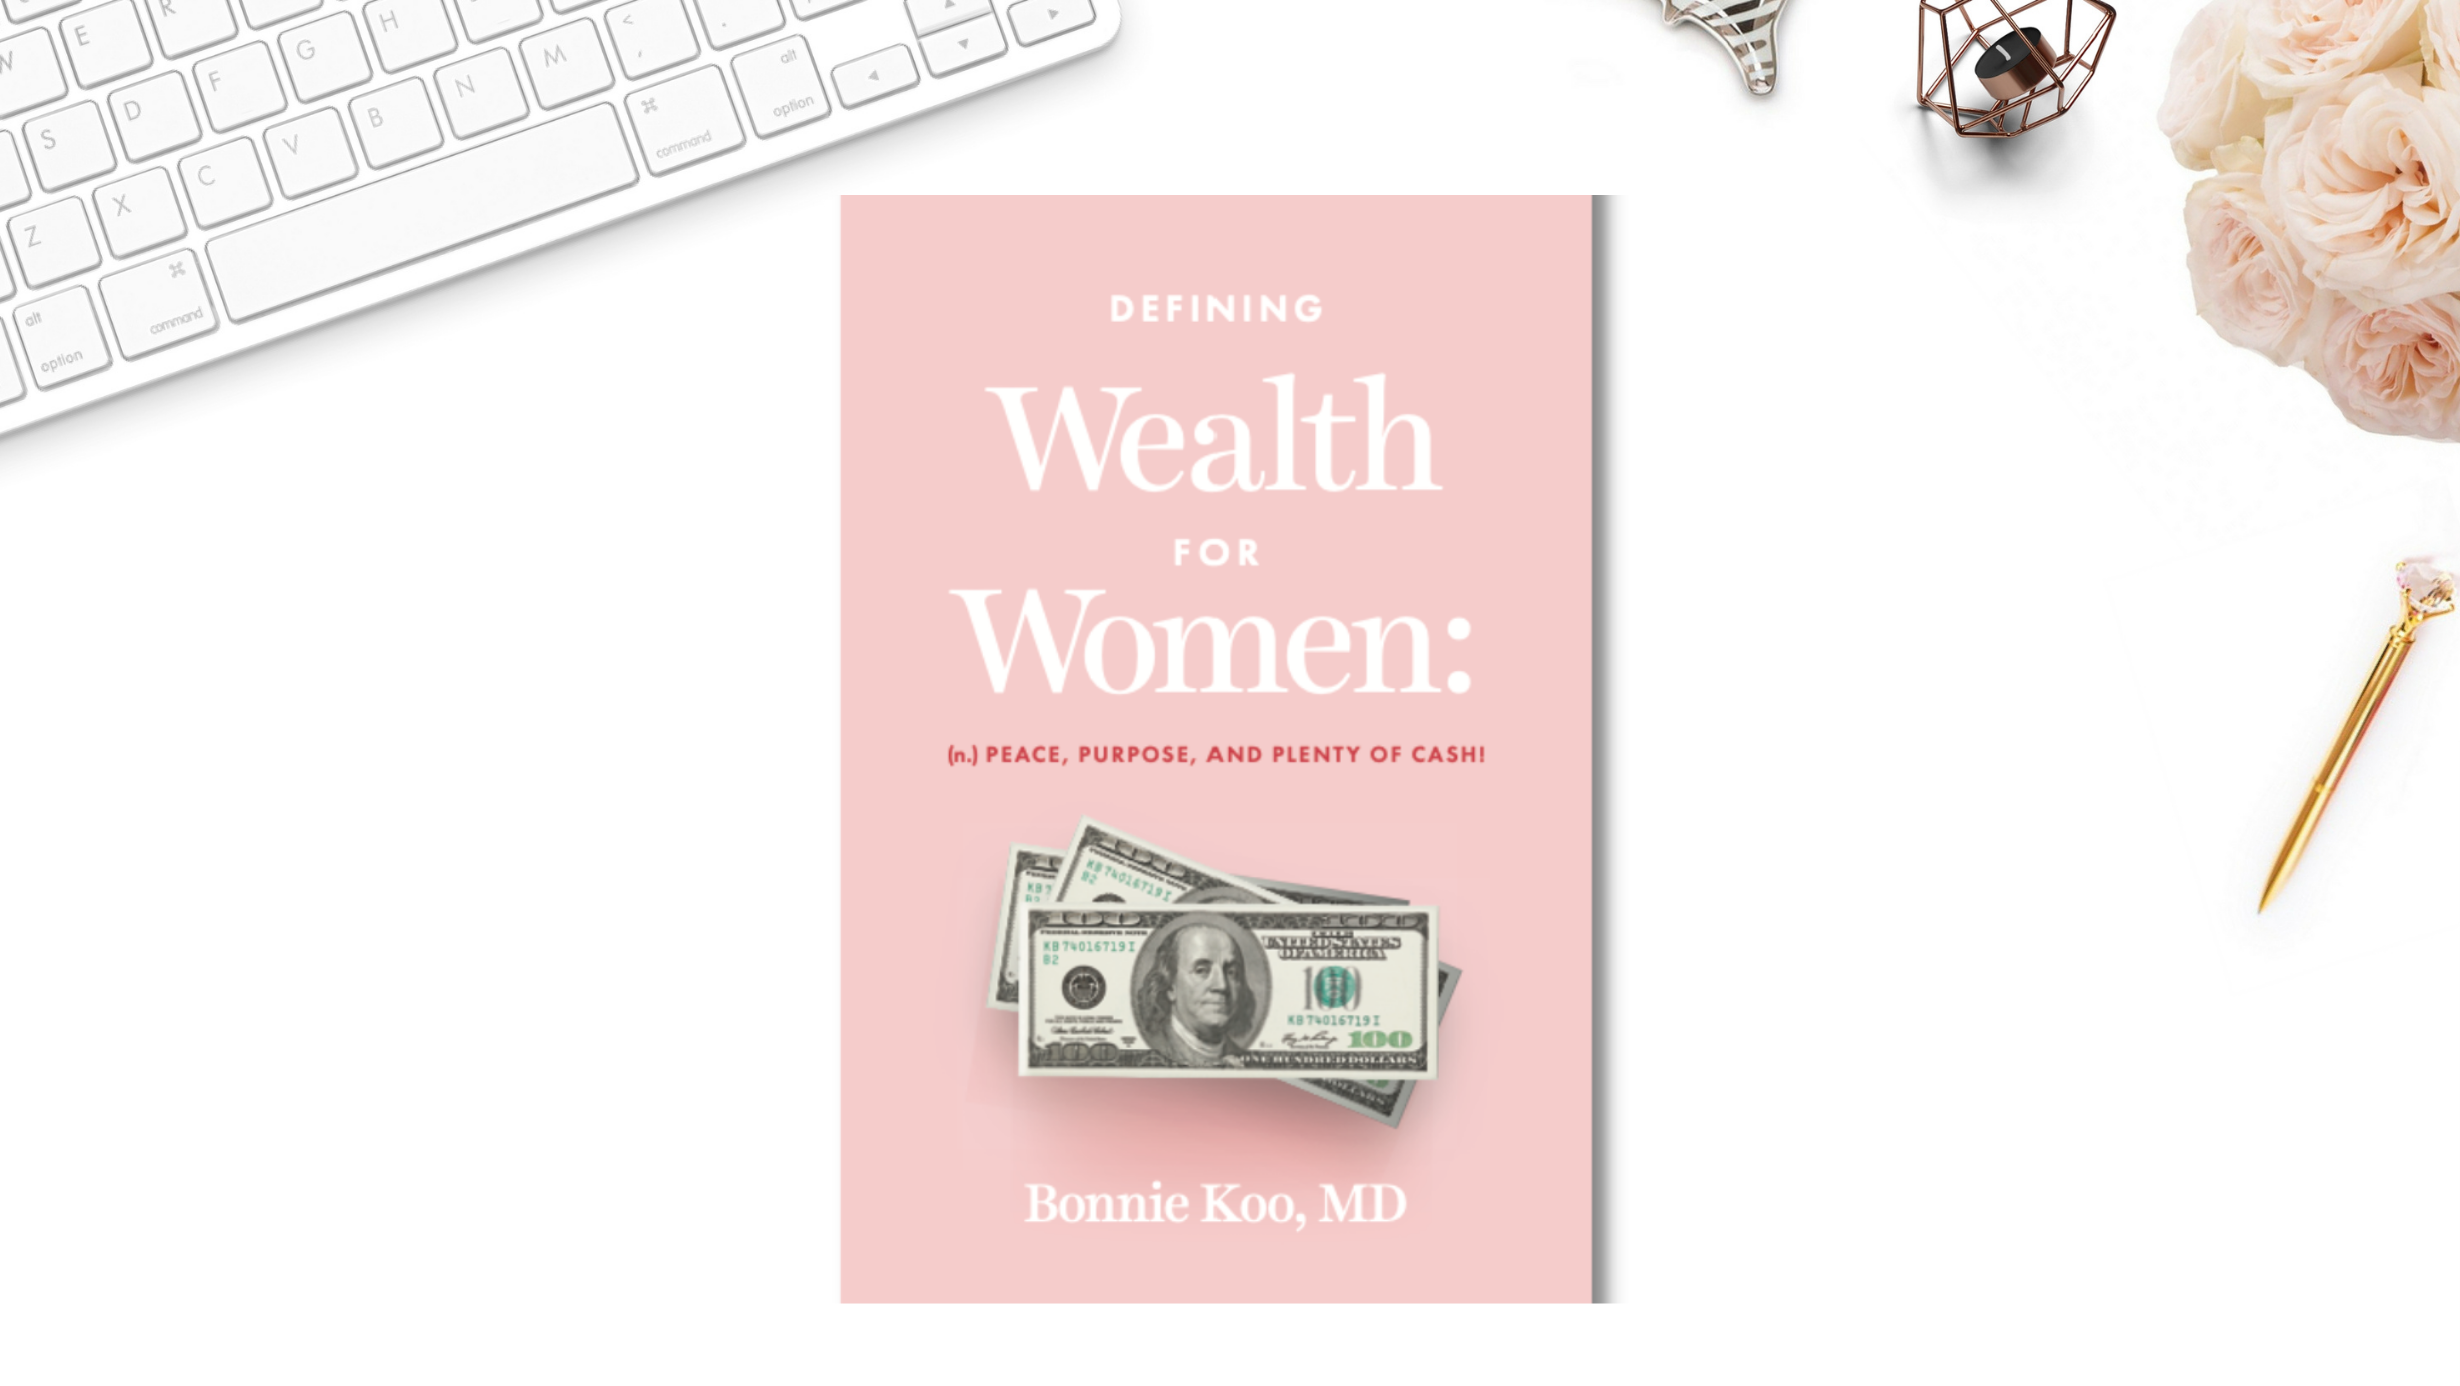 Book: Defining Wealth for Women